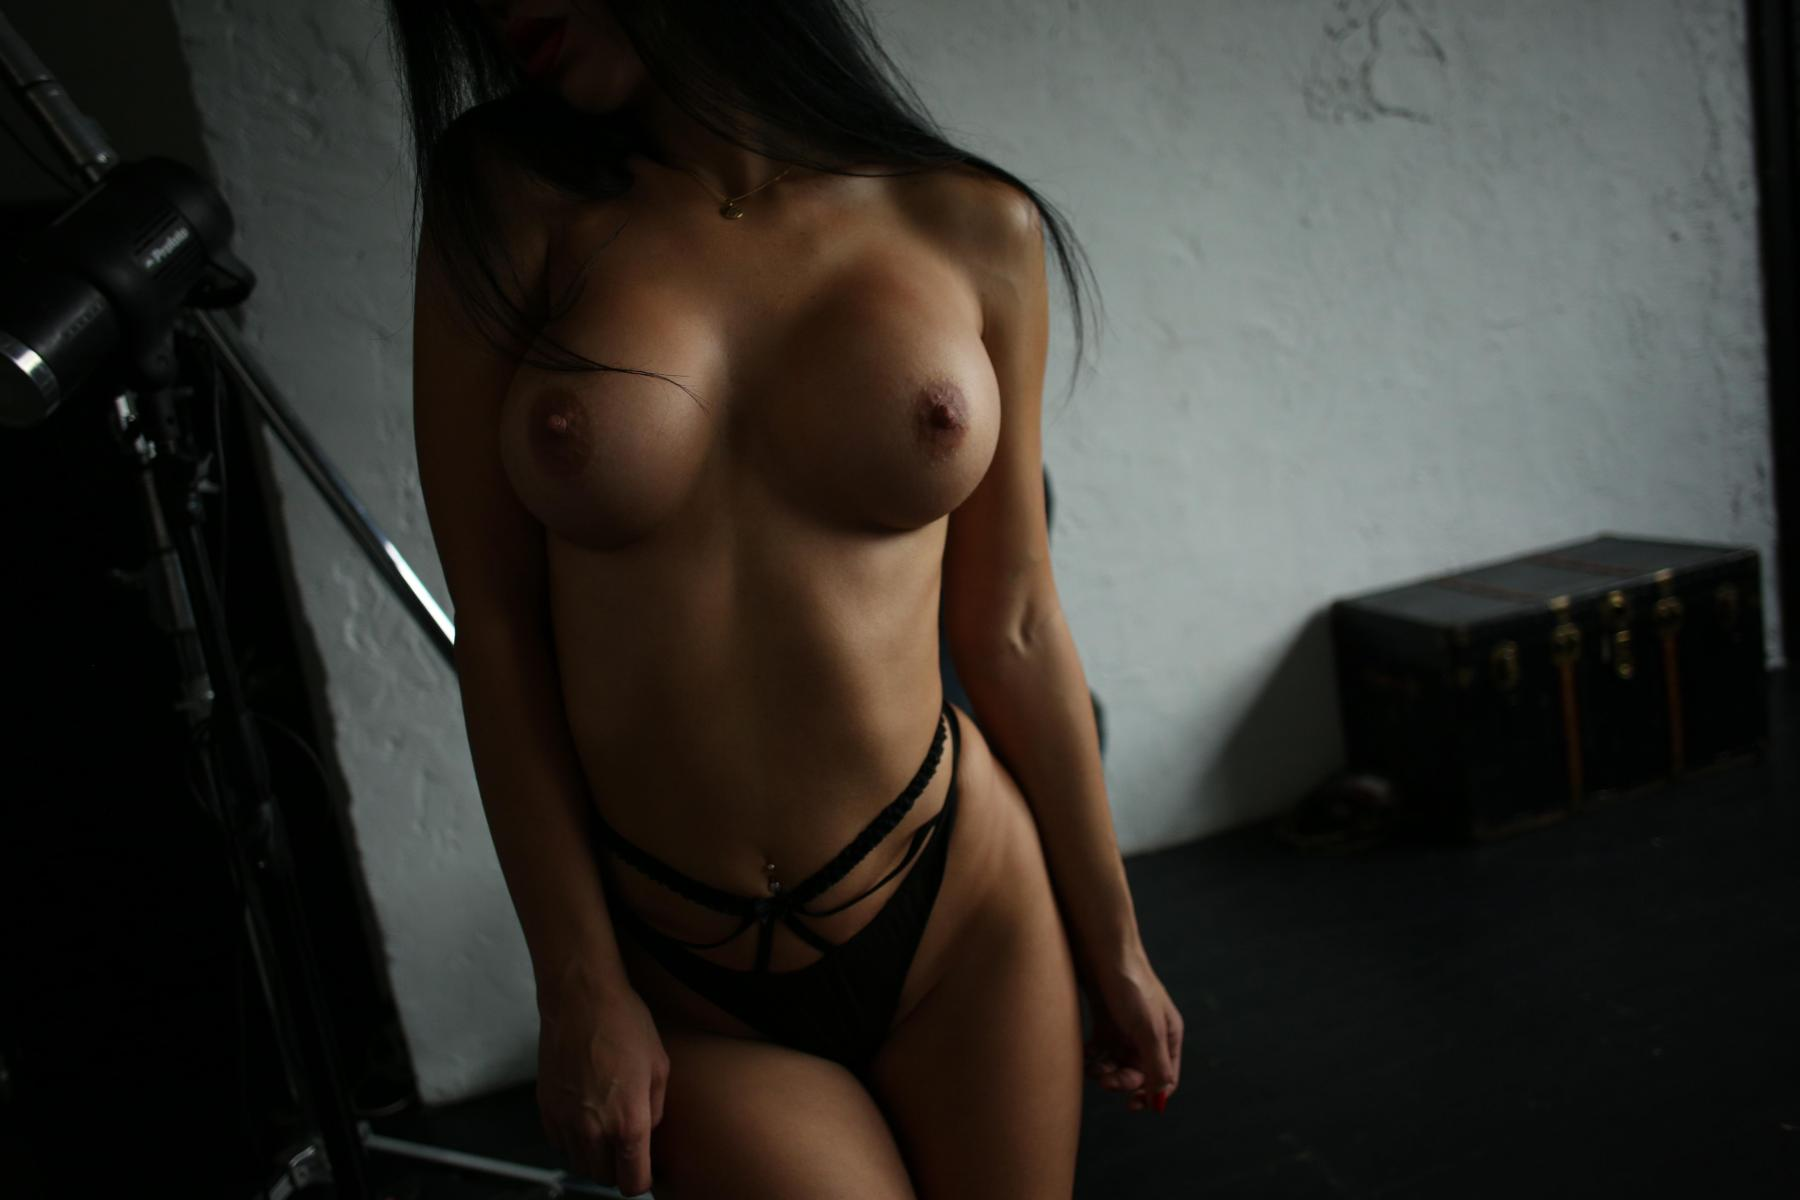 Yana Sexy Brunette's Tits Porn OnlyFans Leaked Nudes 33